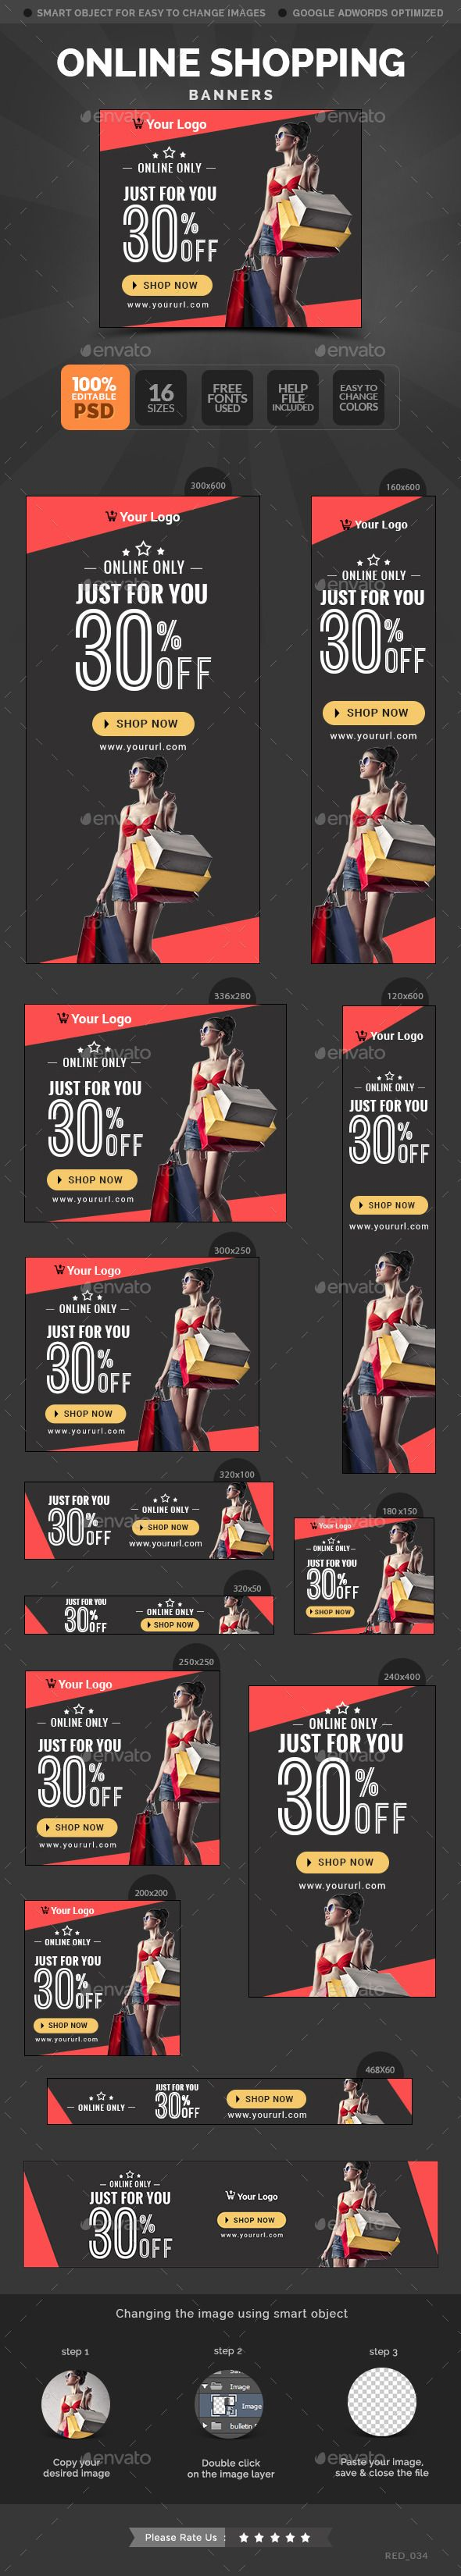 Online Shopping Banners Template  Download: http://graphicriver.net/item/online-shopping-banners/10786389?ref=ksioks